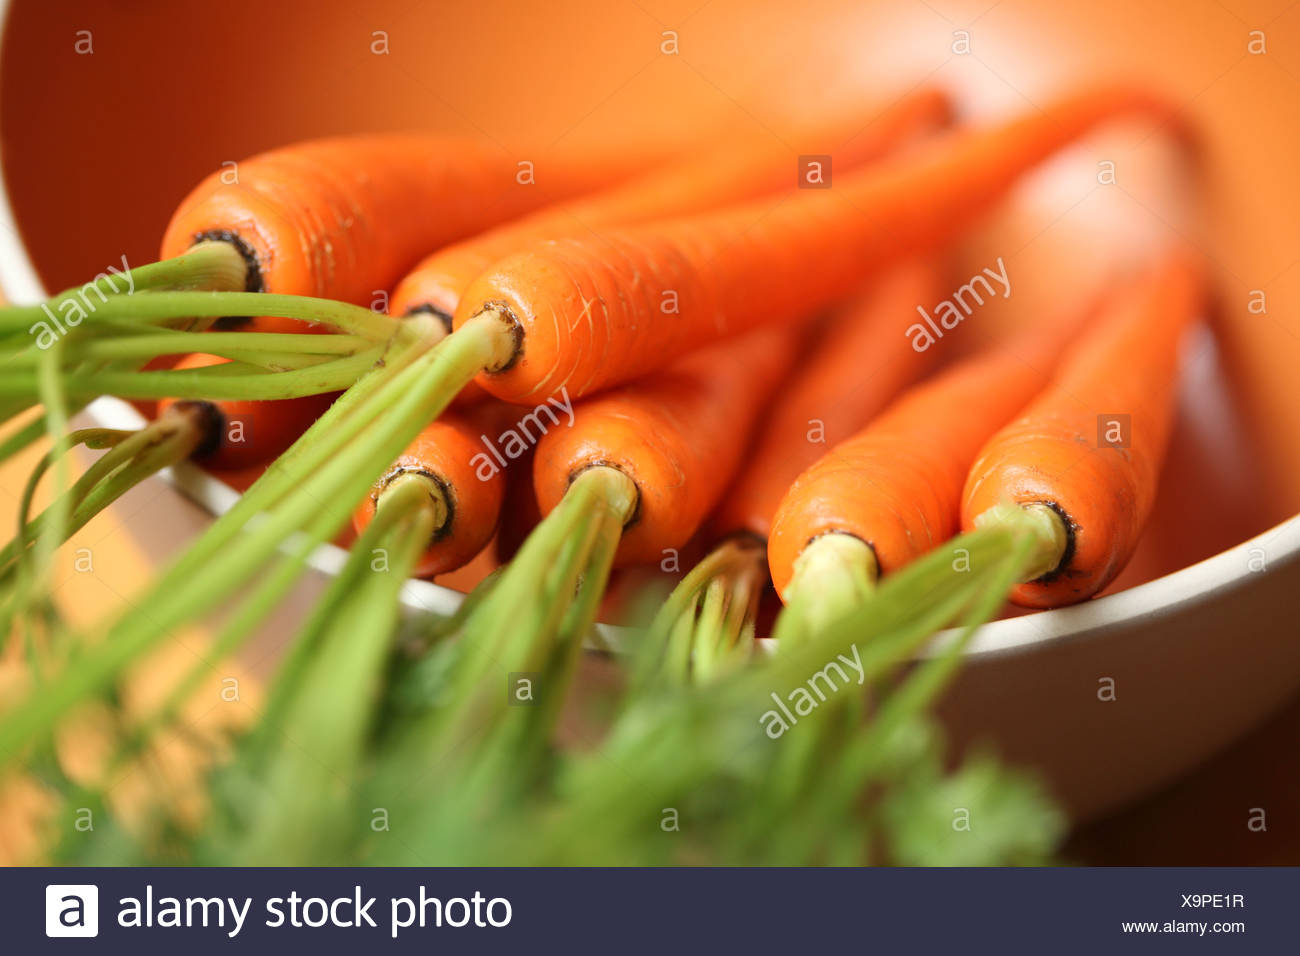 Carottes Photo Stock